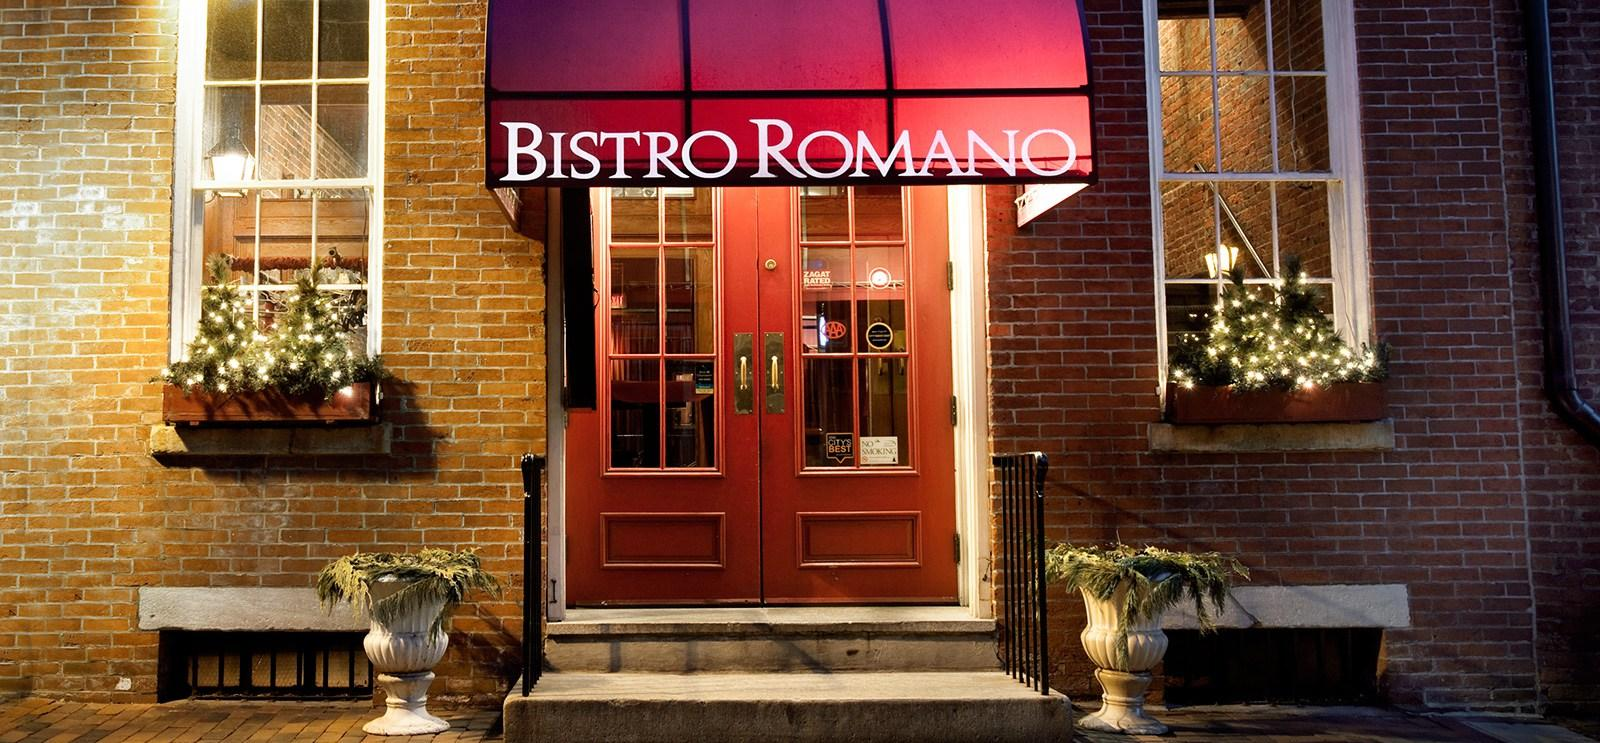 1094 Philly Area Ranks In Top 100 Most Romantic Restaurants In America